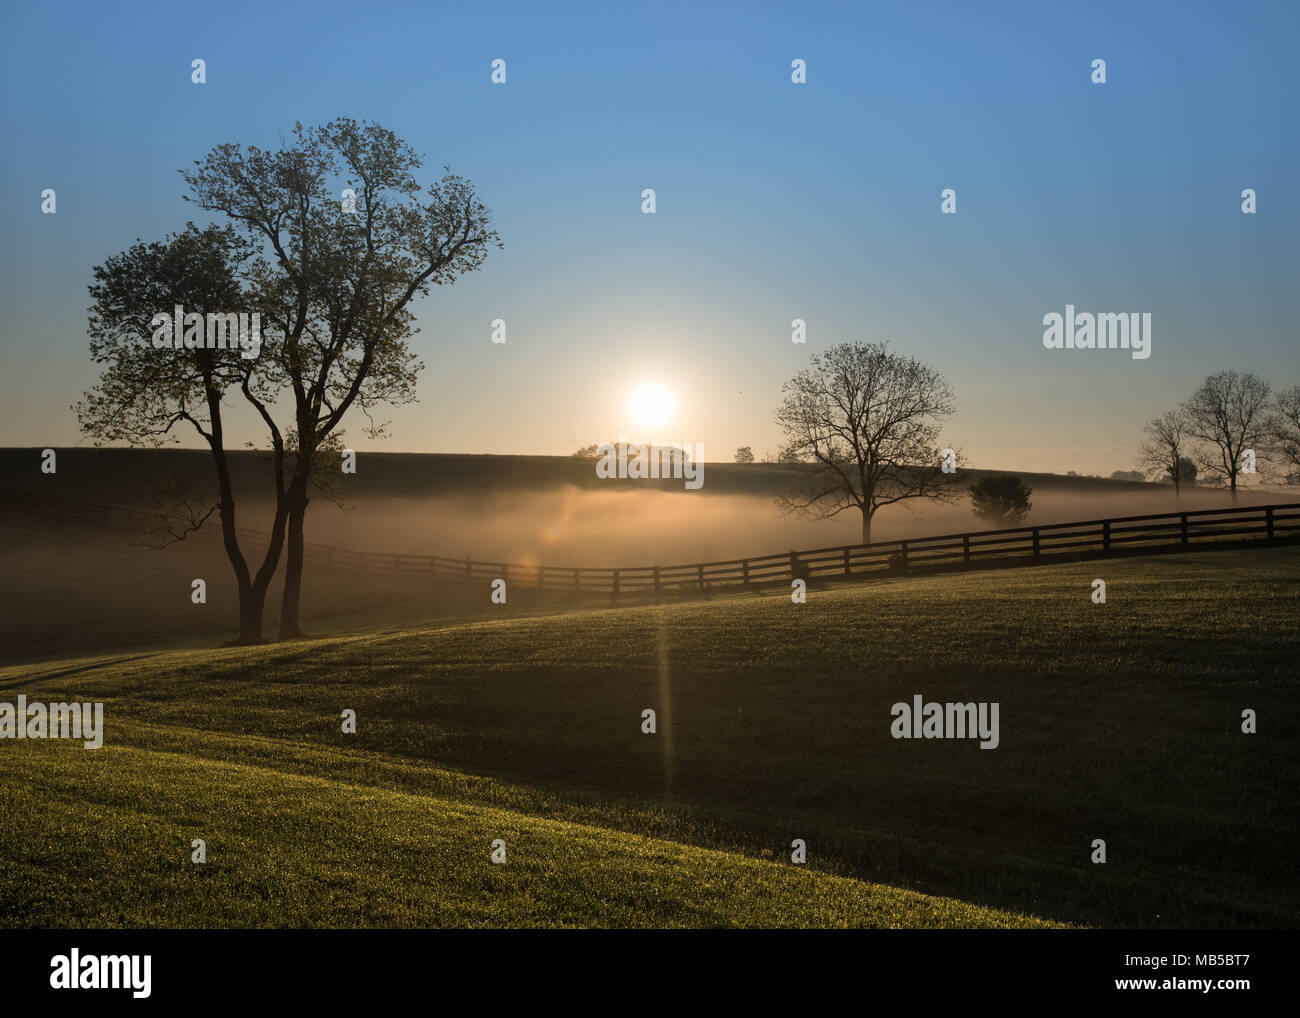 Sun Rises Over Foggy Hills of Kentucky with black fence running through - Stock Image